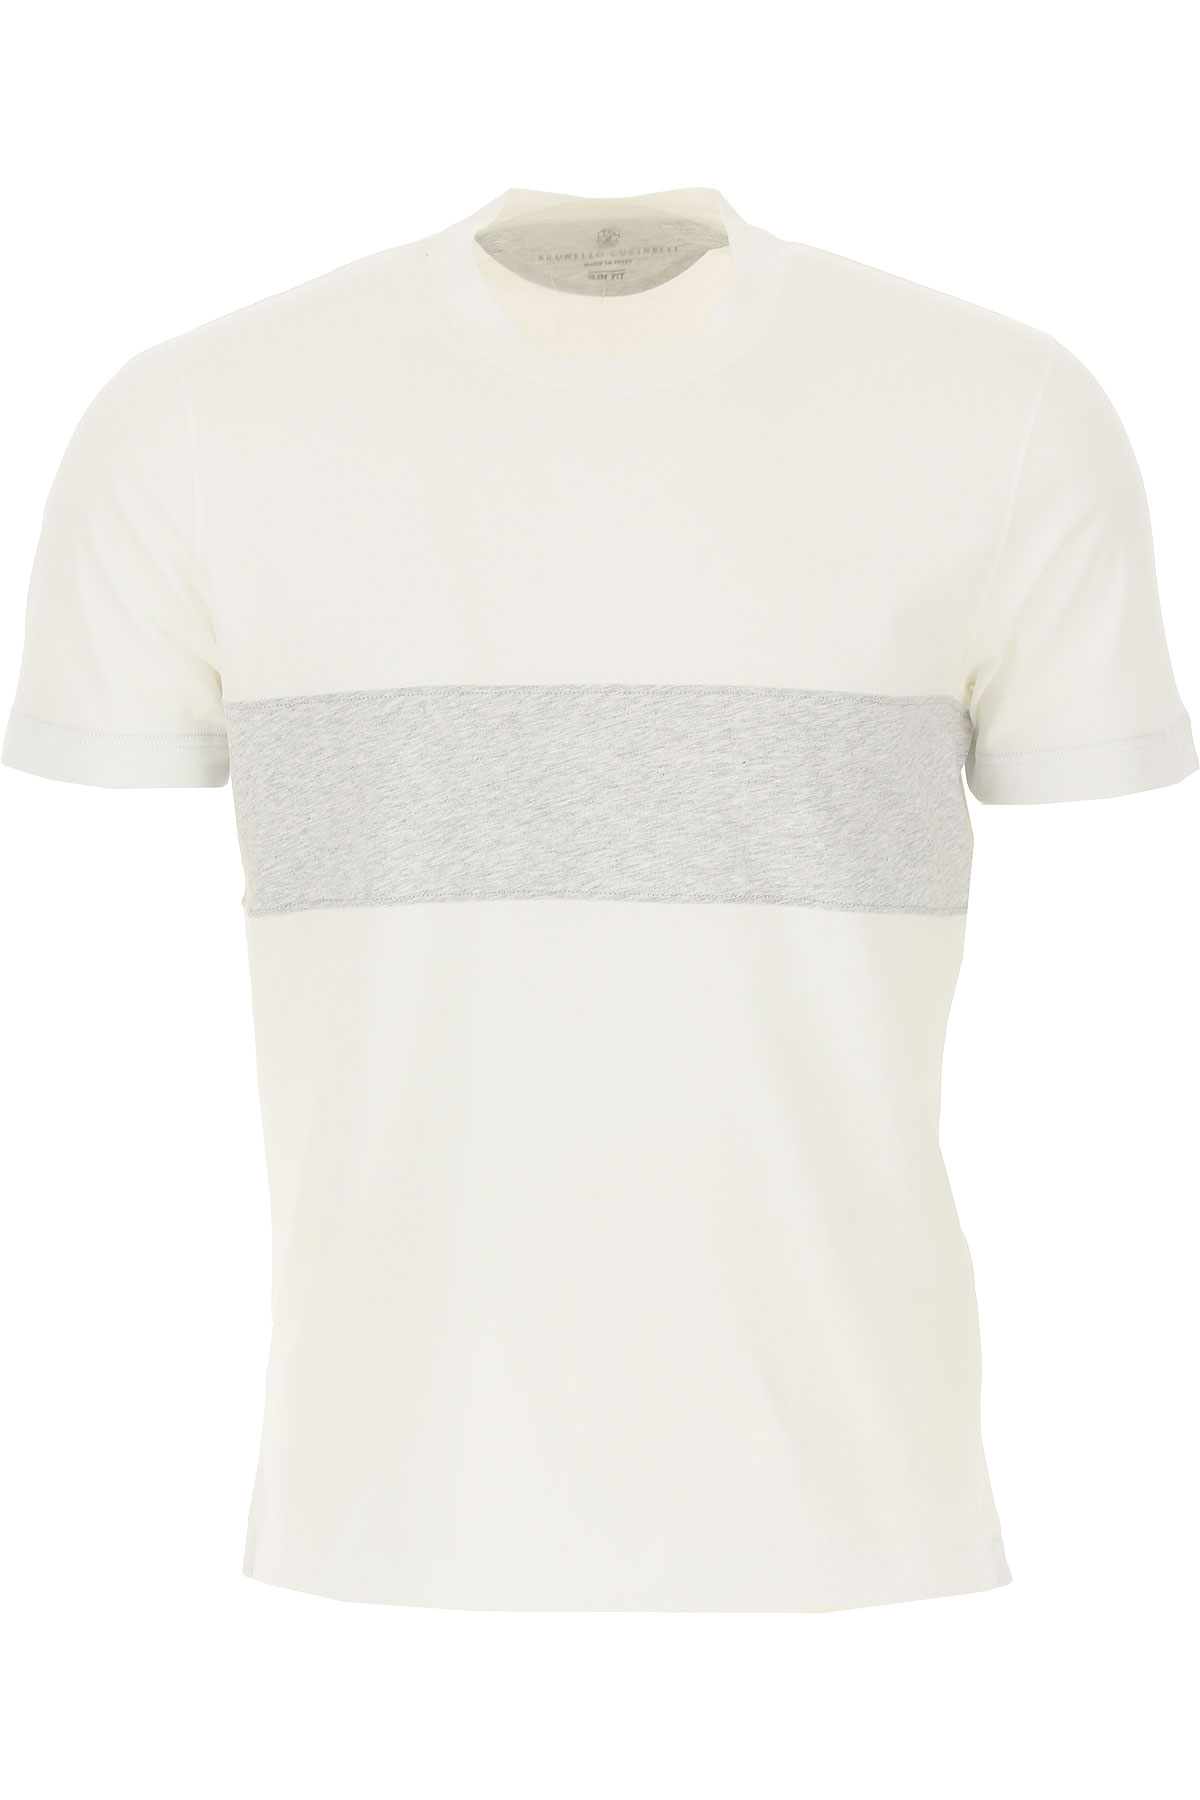 Brunello Cucinelli T-Shirt for Men On Sale in Outlet, White, Cotton, 2019, M S